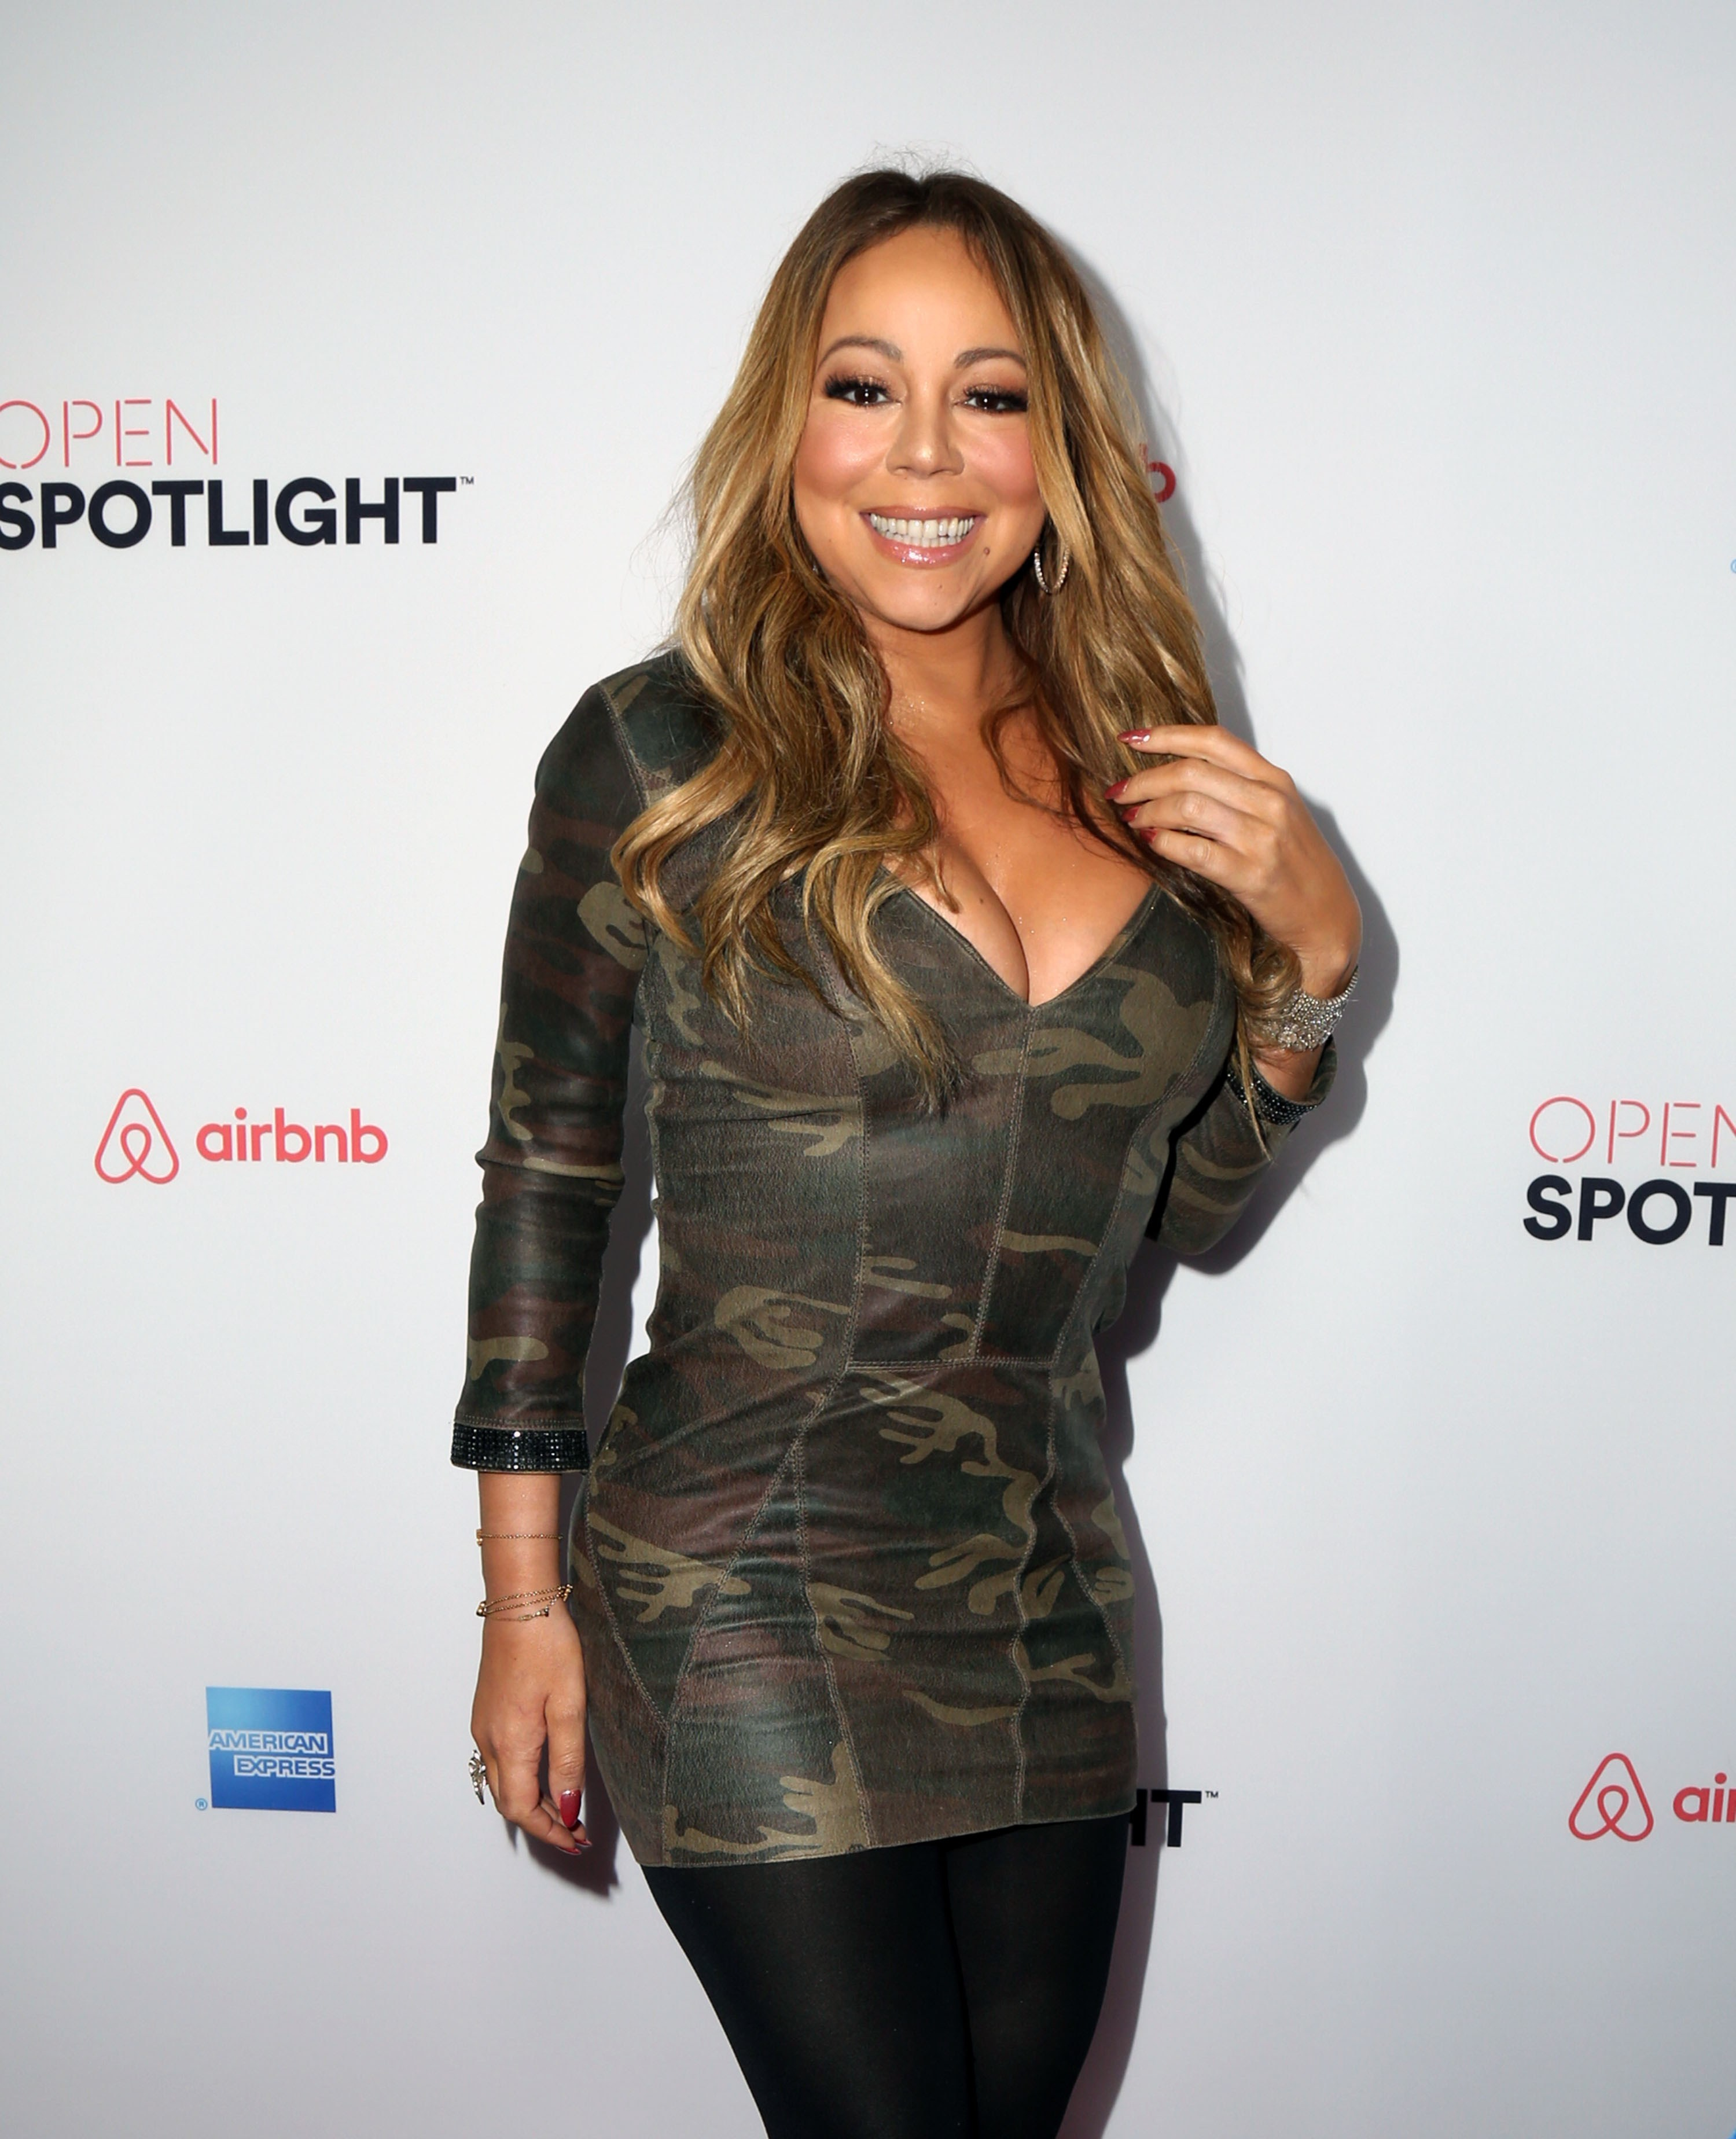 Mariah Carey says her diet consists of only two things